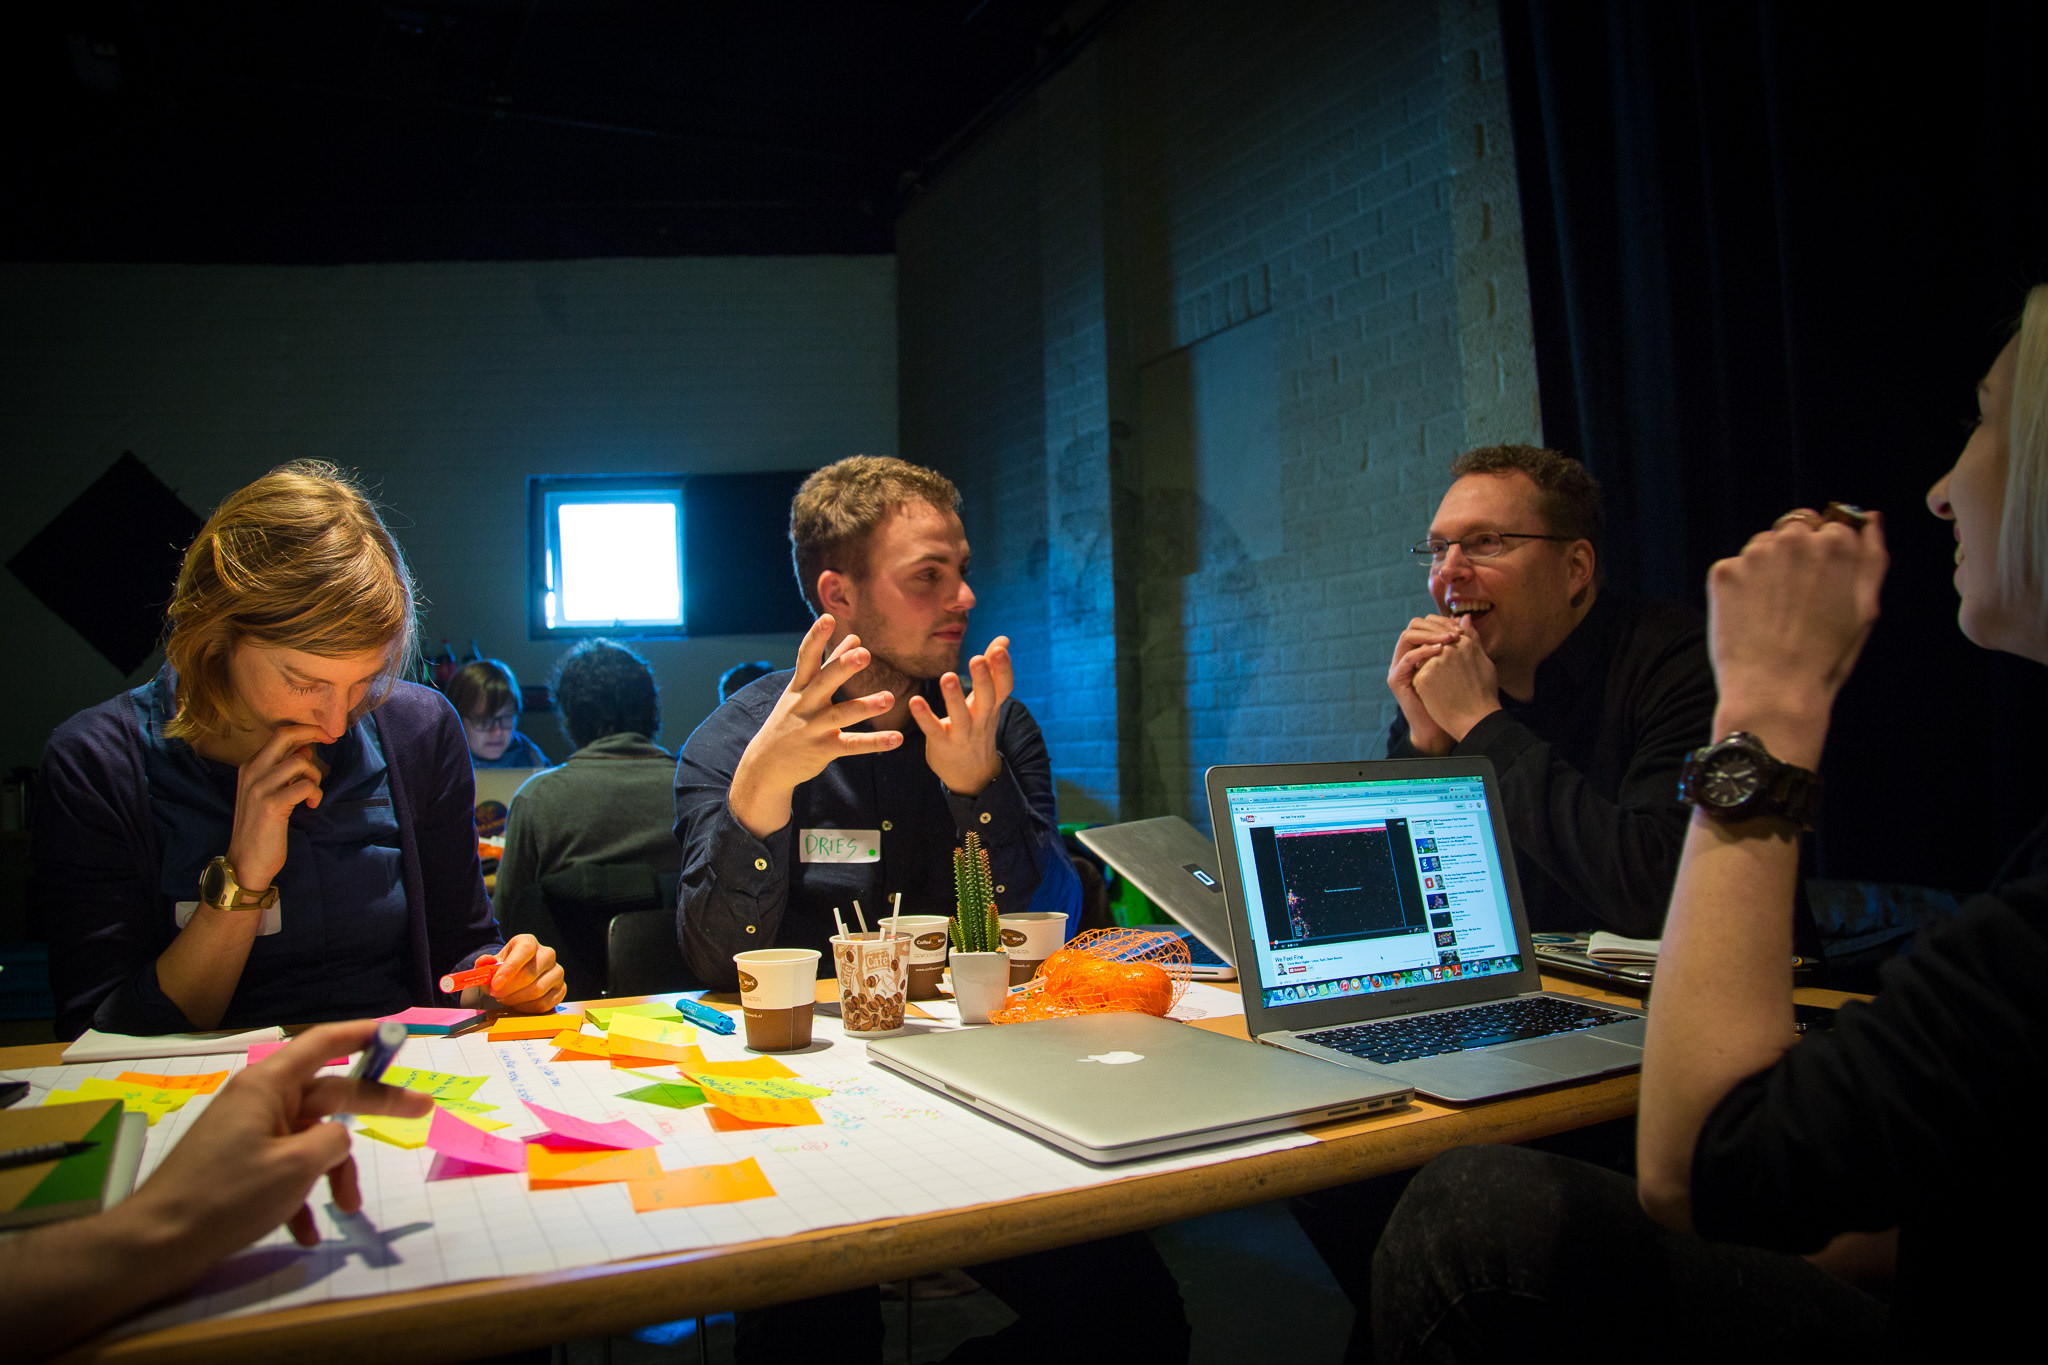 Participants work at a Hackastory event in Amsterdam. (Photo: Hackastory)